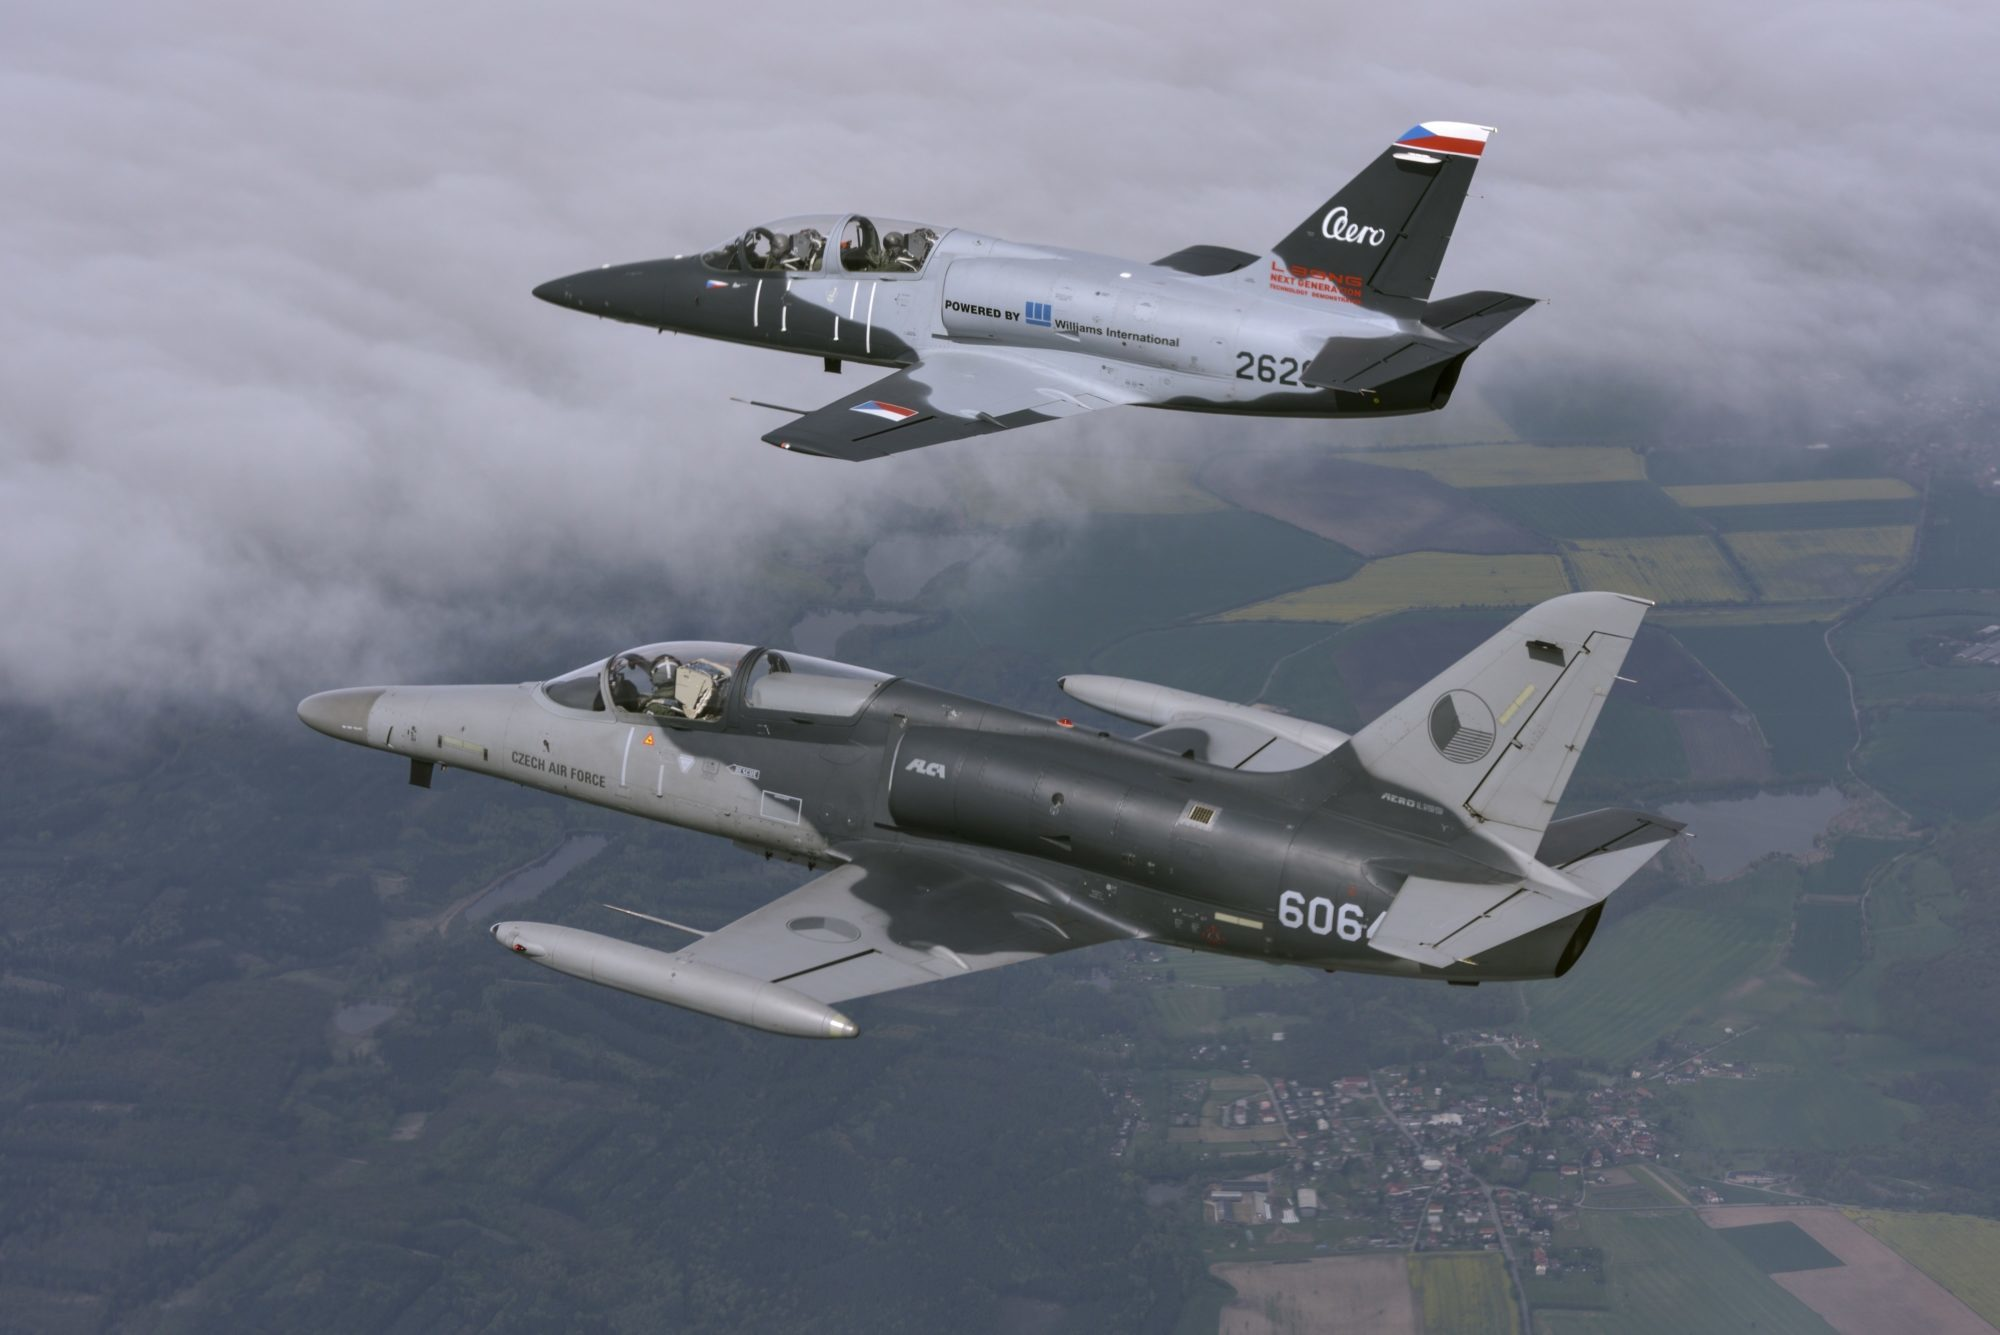 Czech Aero Vodochody and Israel Aerospace Industries strengthening ties by cooperating on light attack/trainer jets